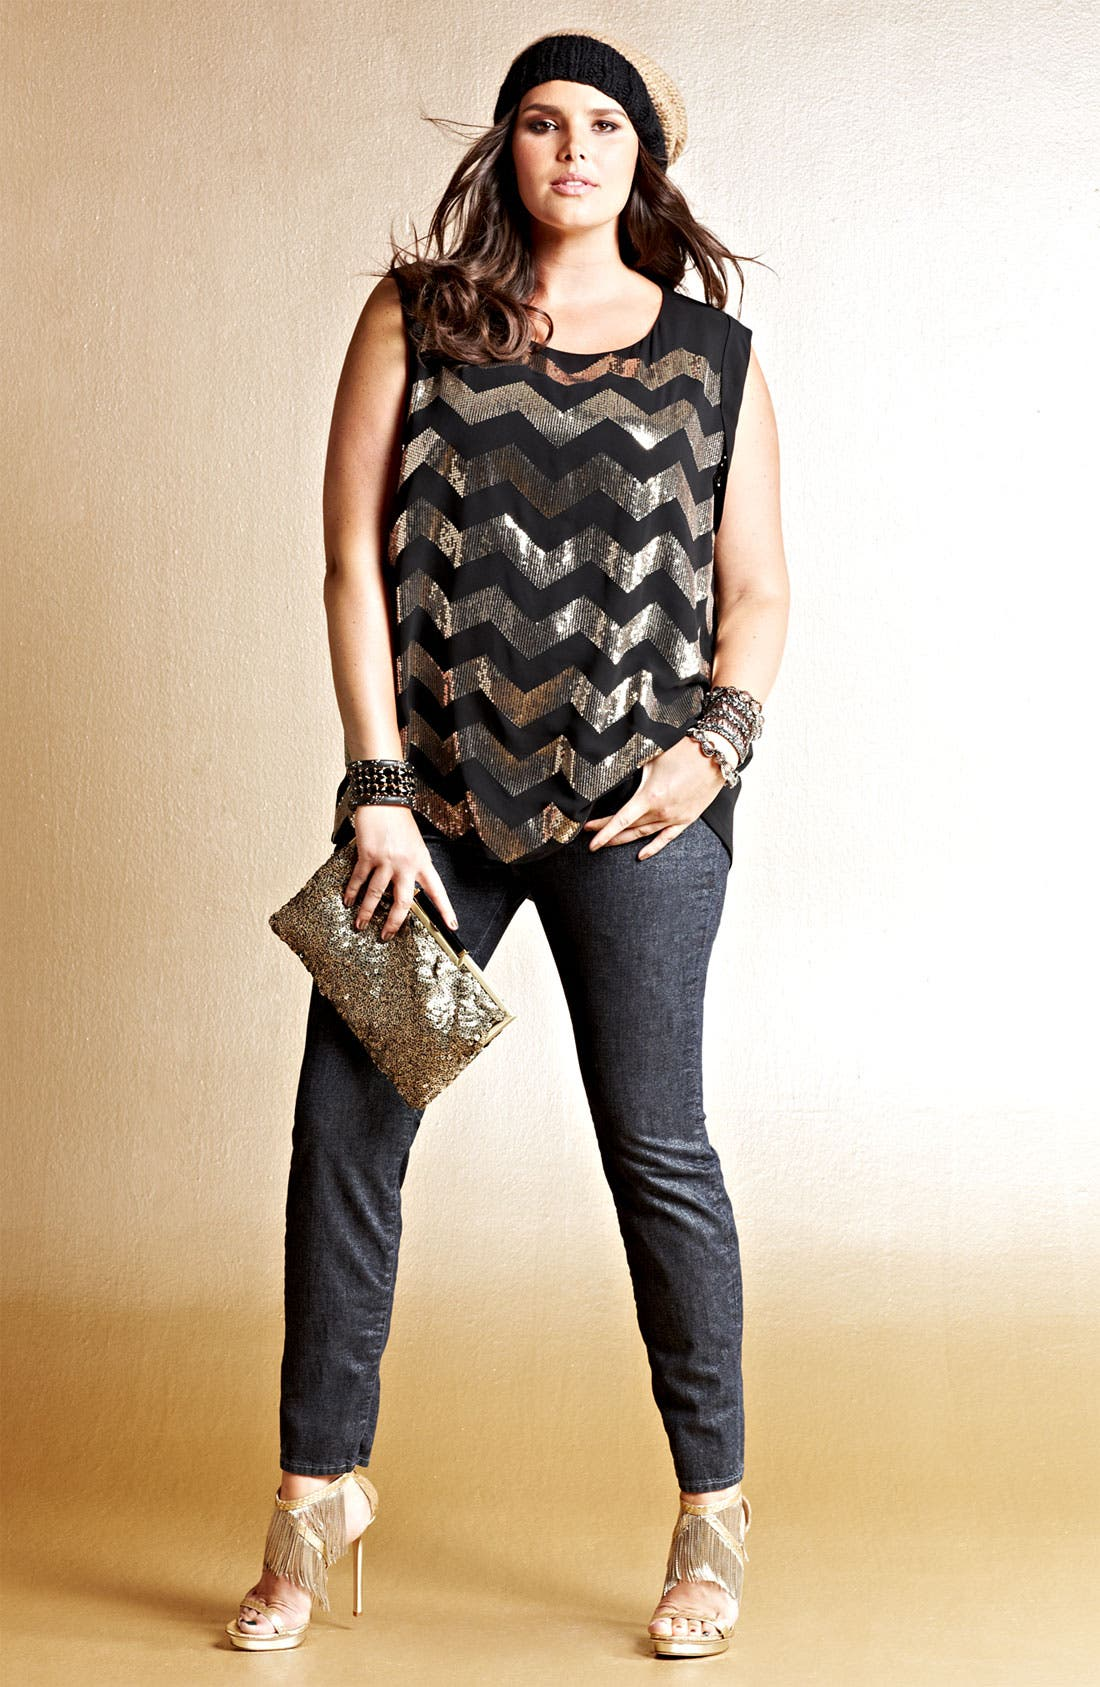 Alternate Image 1 Selected - Vince Camuto Blouse & Lucky Brand Jeans